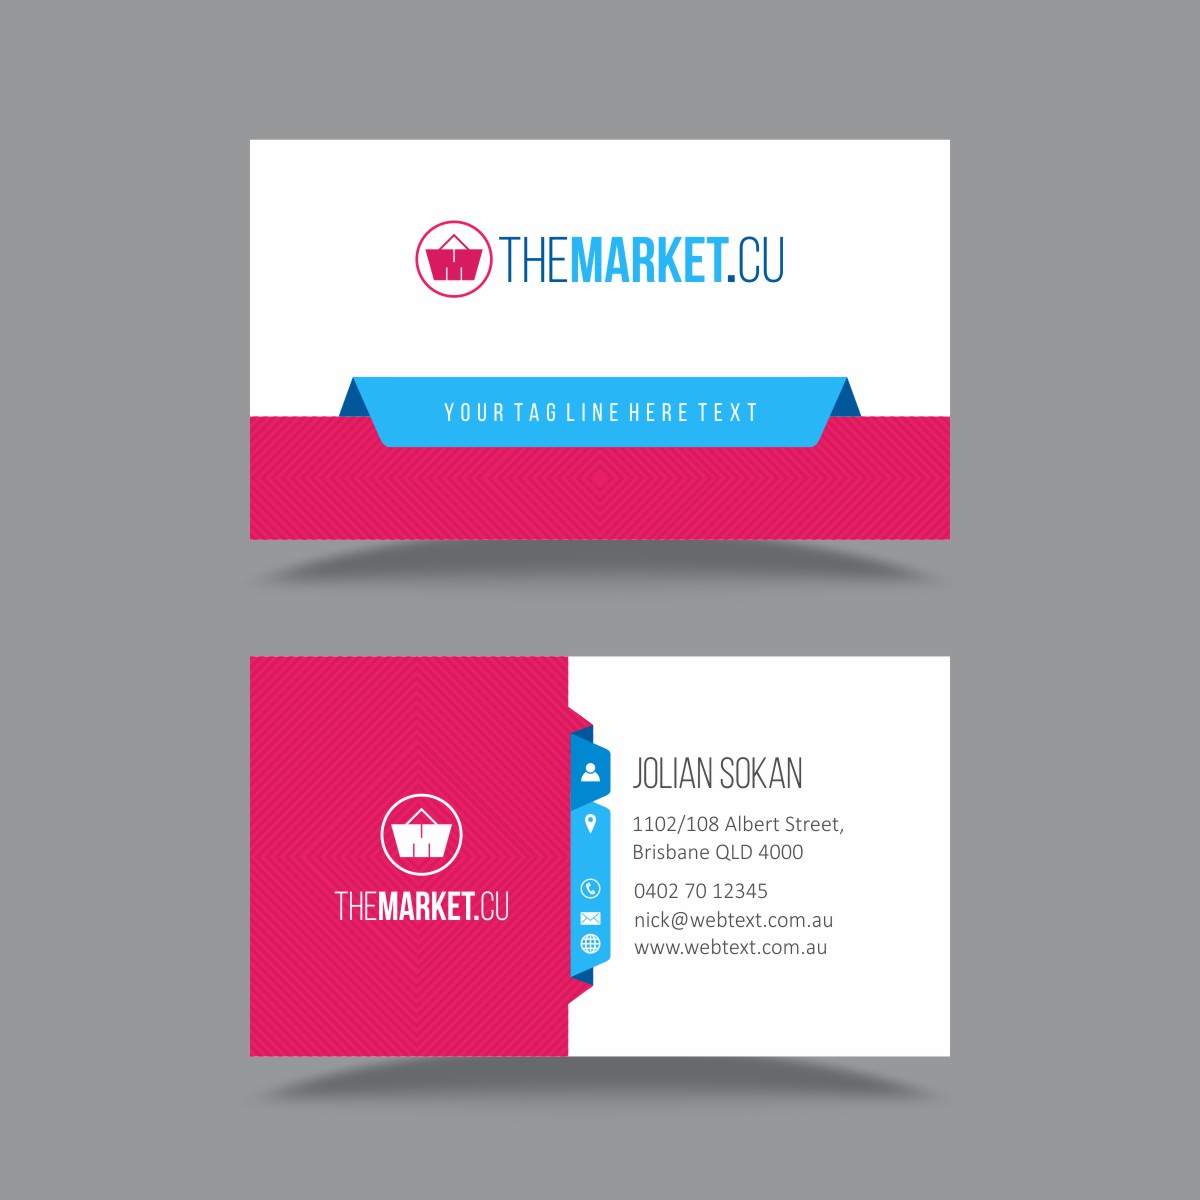 Logo maker free for business card template 28 images business logo maker free for business card template by ecommerce business card template logo maker s accmission